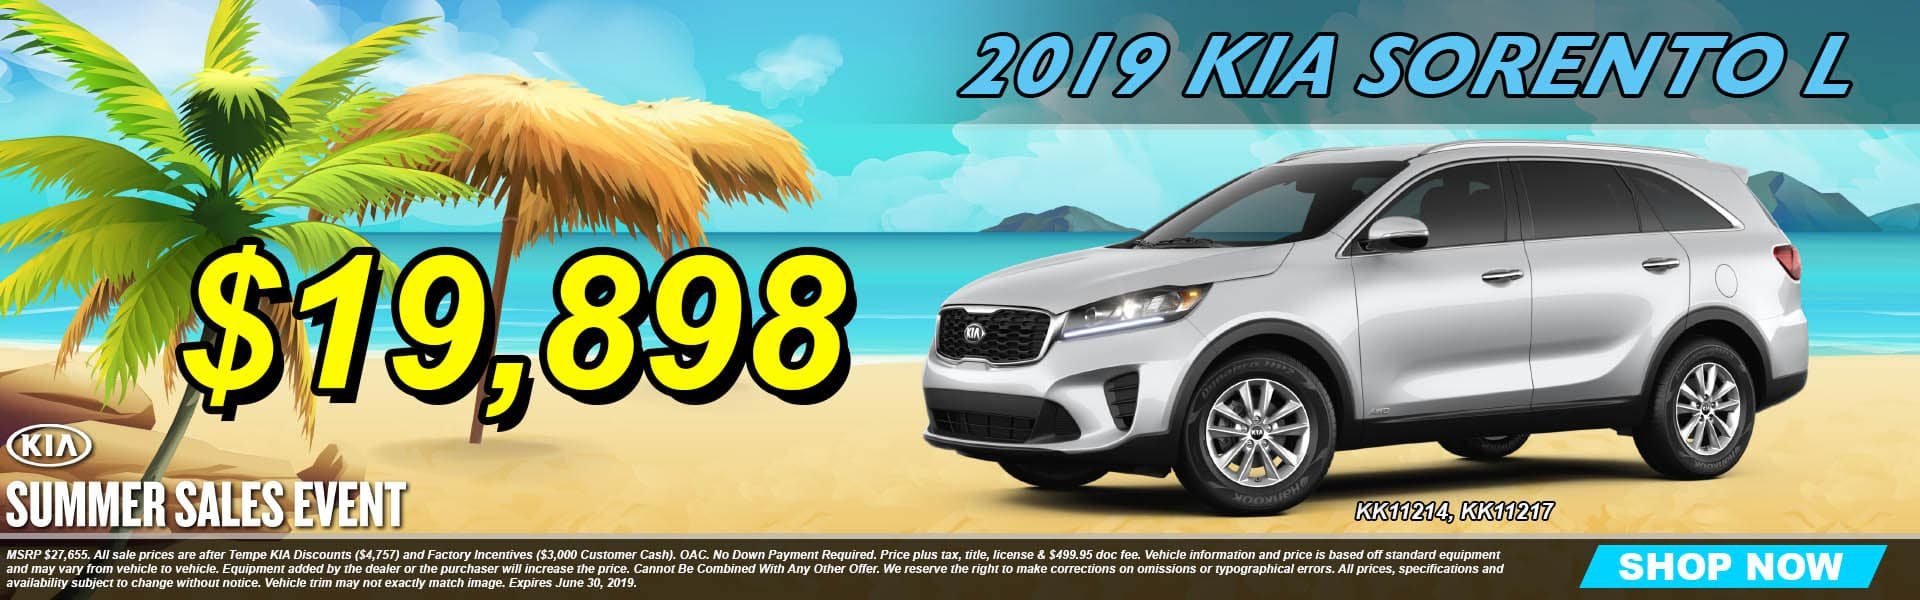 2019 Kia Sorento L Summer Sales Event